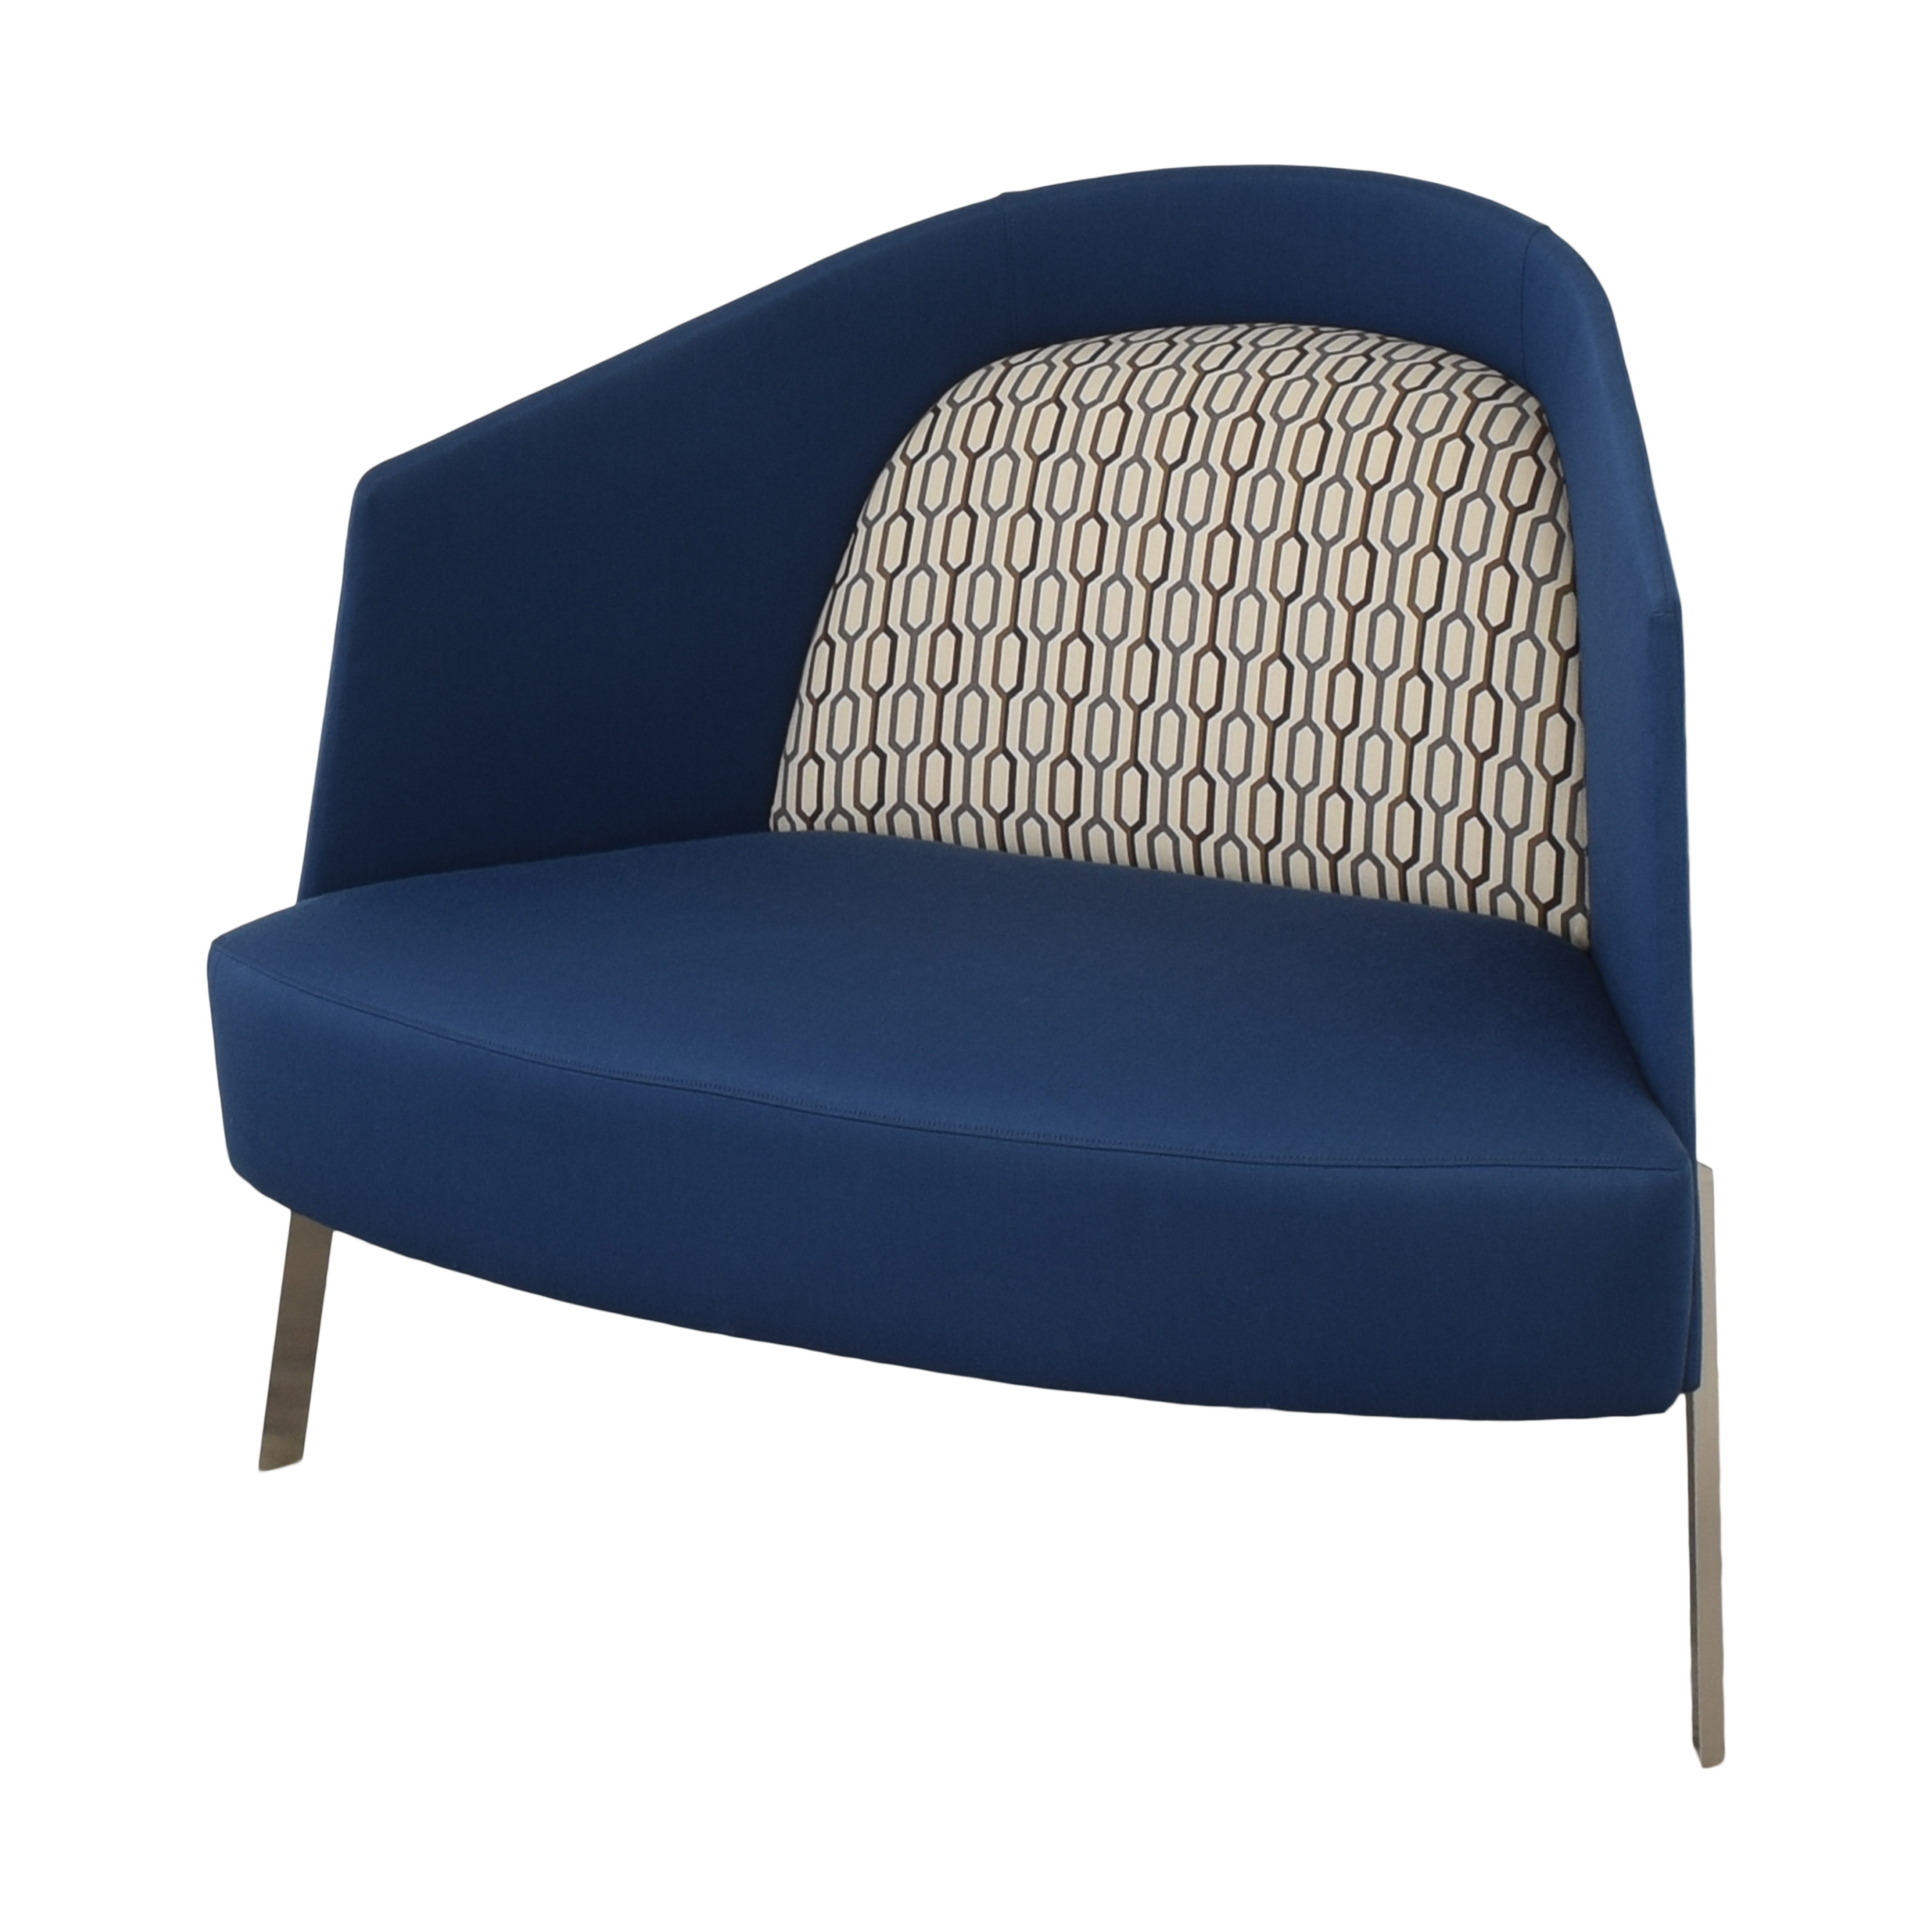 TK Collections Studio TK Fractals Lounge Chair Chairs